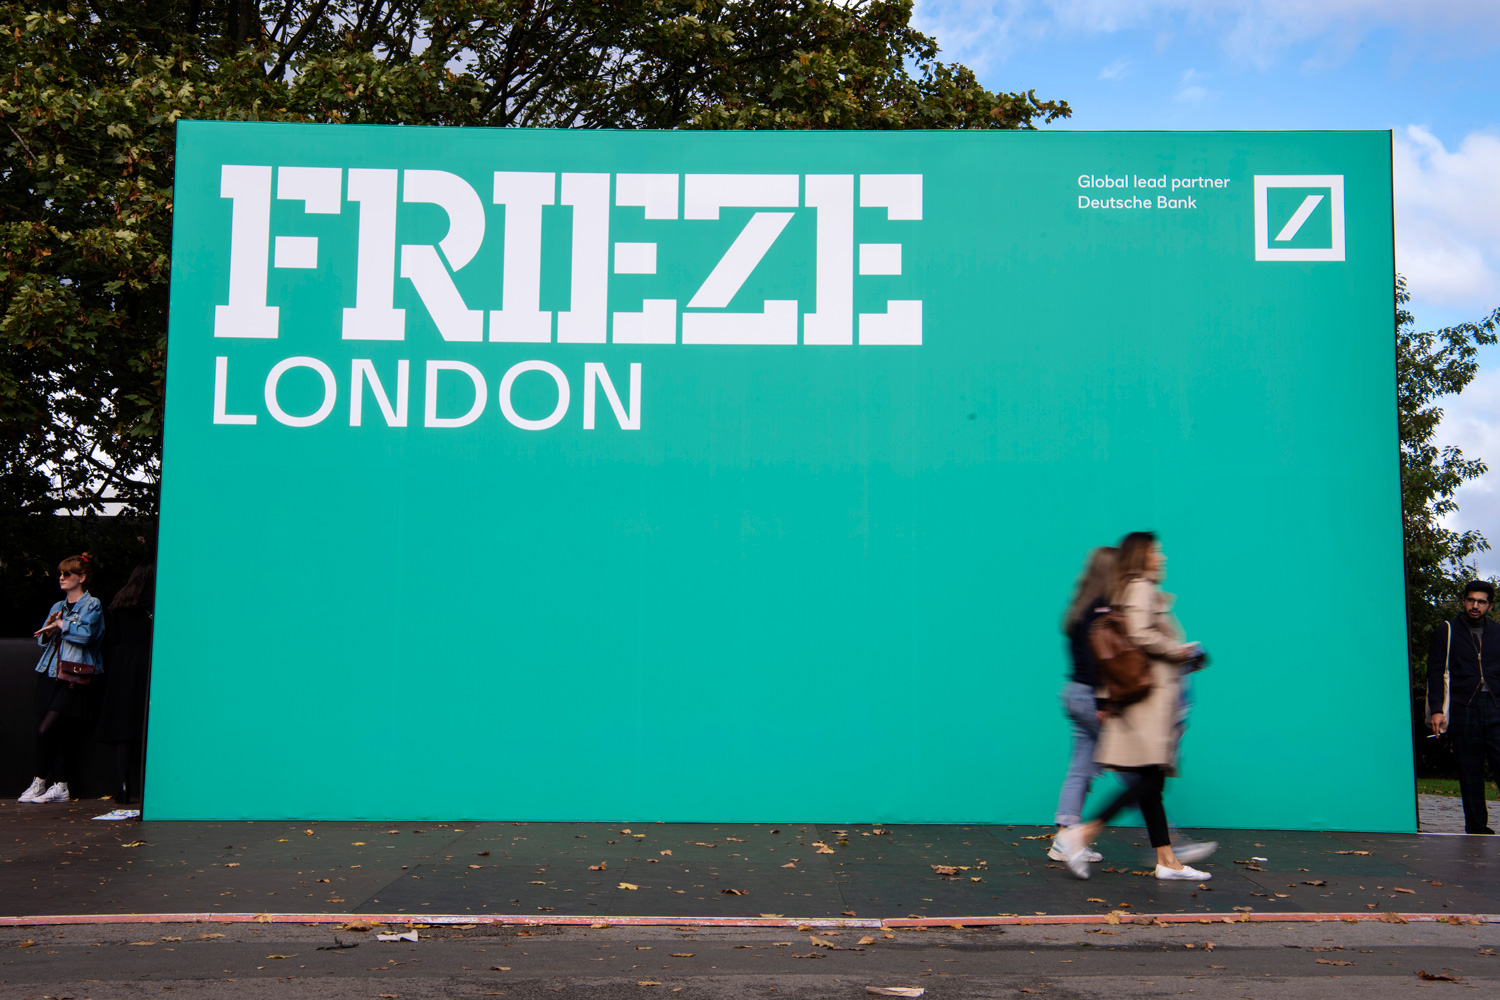 Frieze, Londra/London, 2019